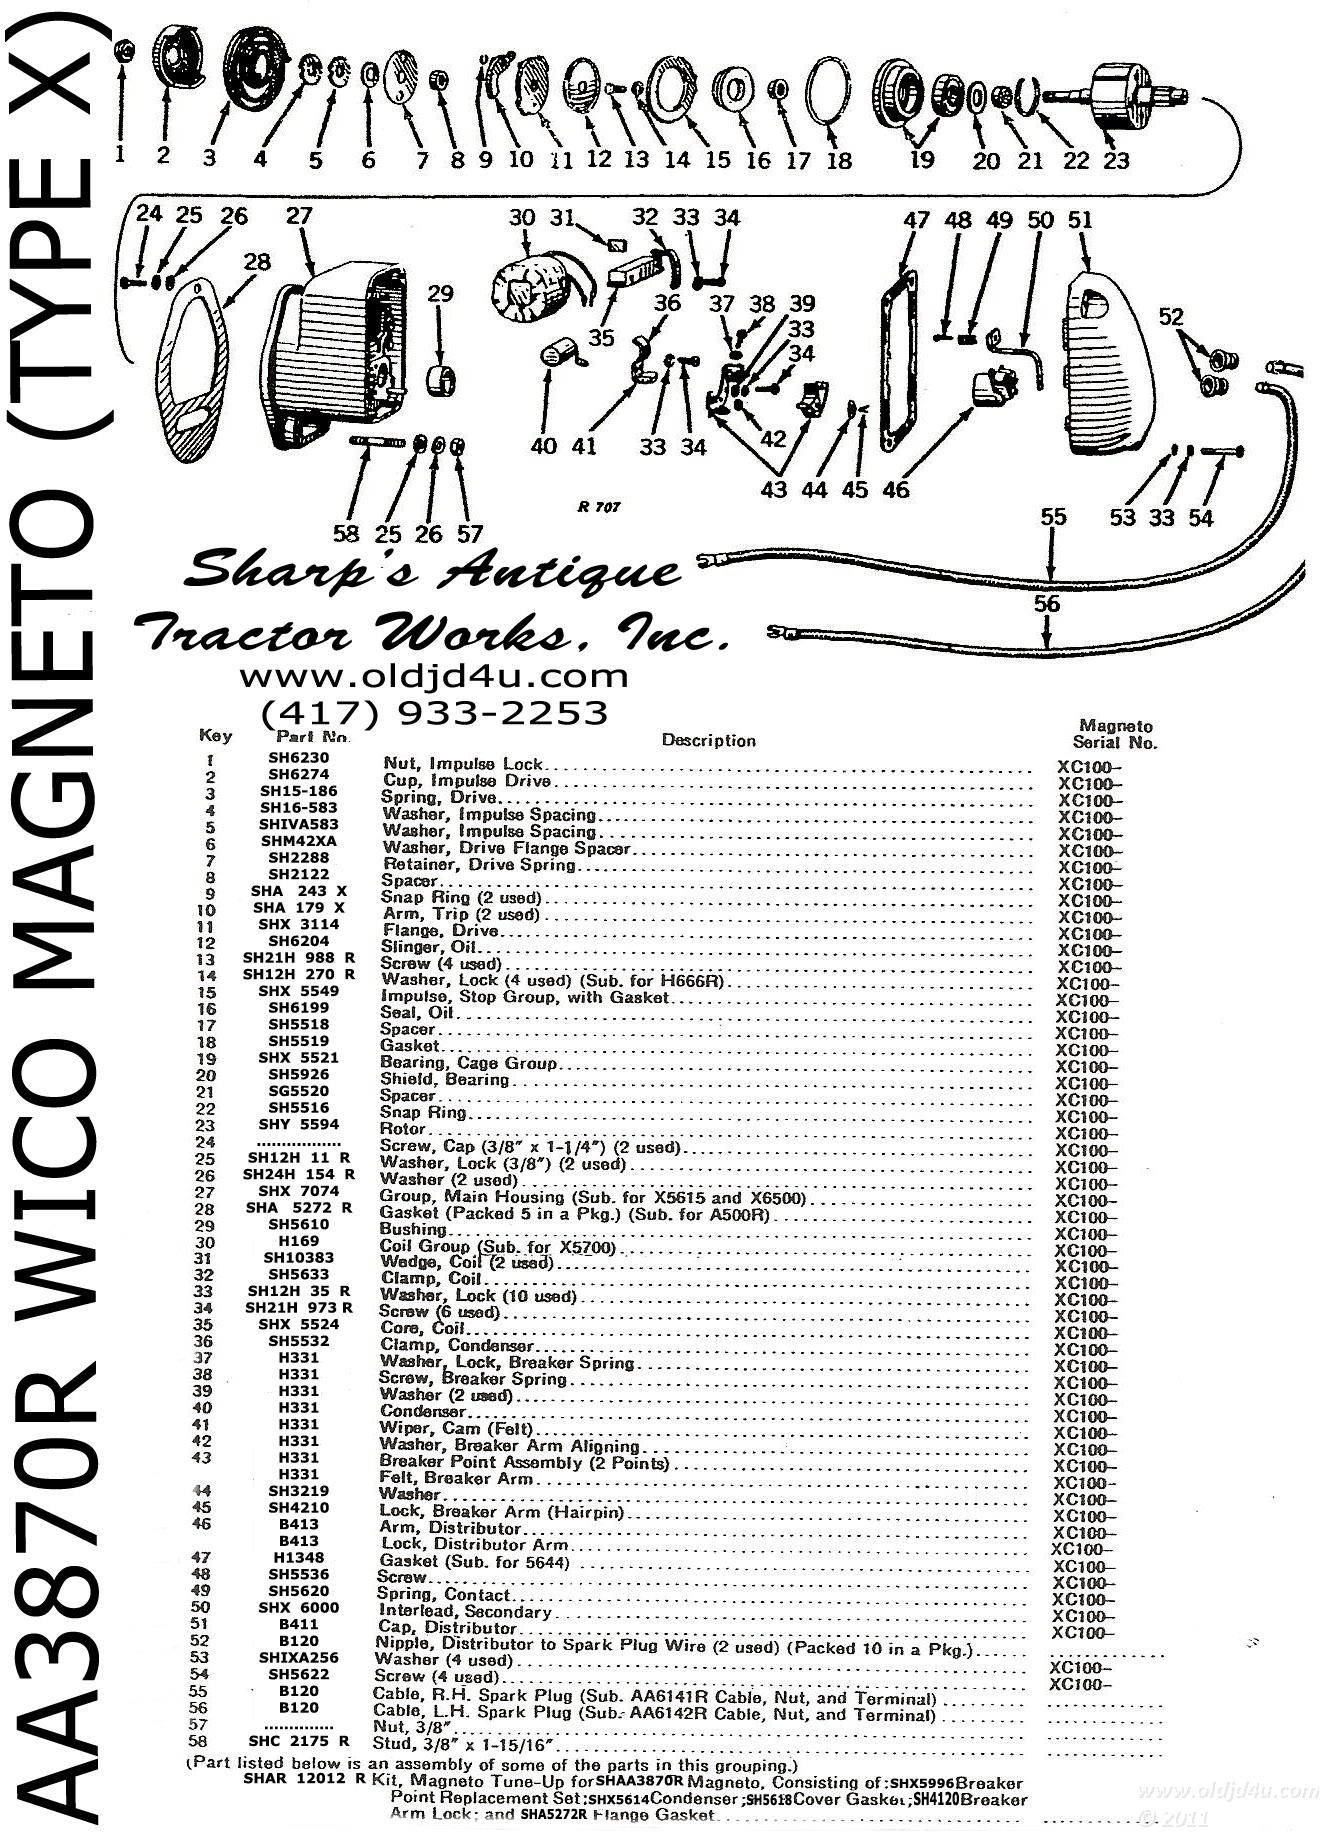 Wrg Wico Magneto Wiring Schematic